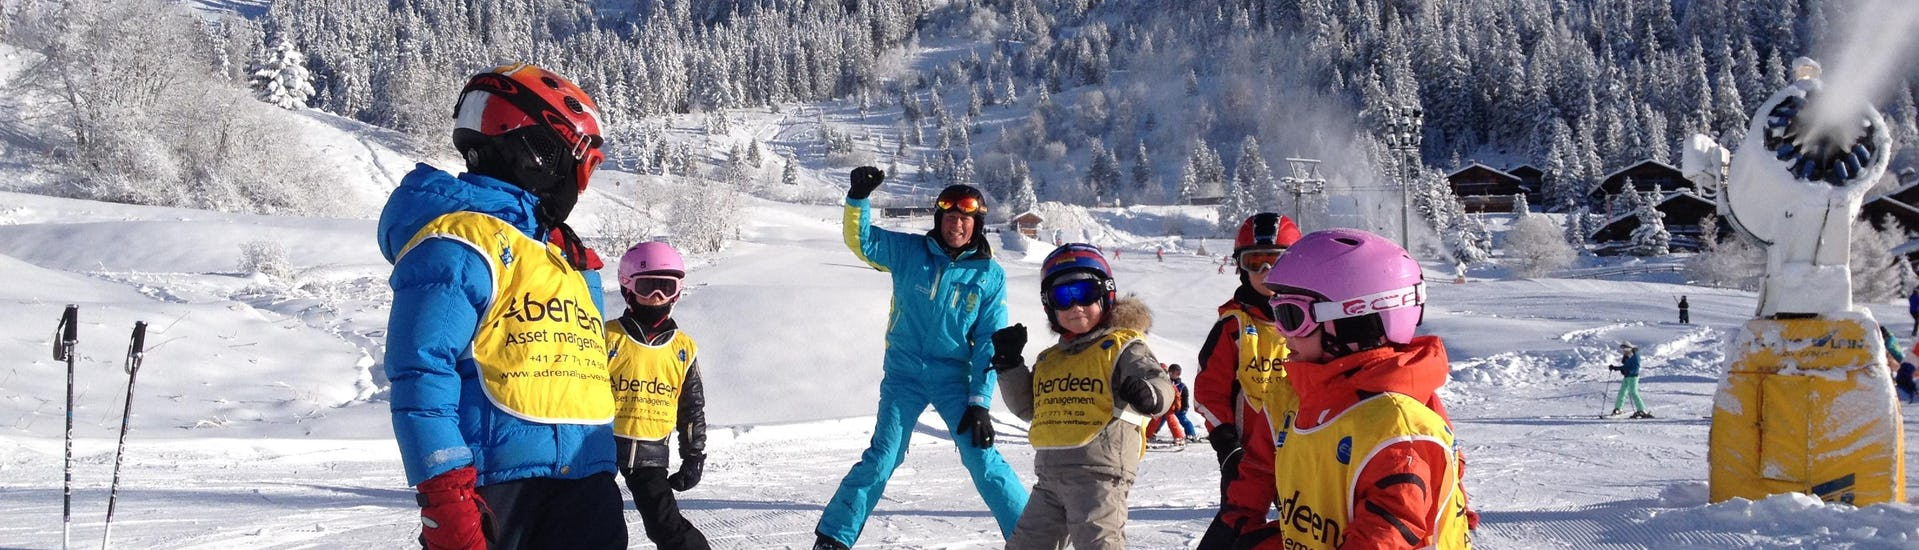 """Ski Lessons for Kids """"6 Max"""" - All Levels from 6 years-old"""